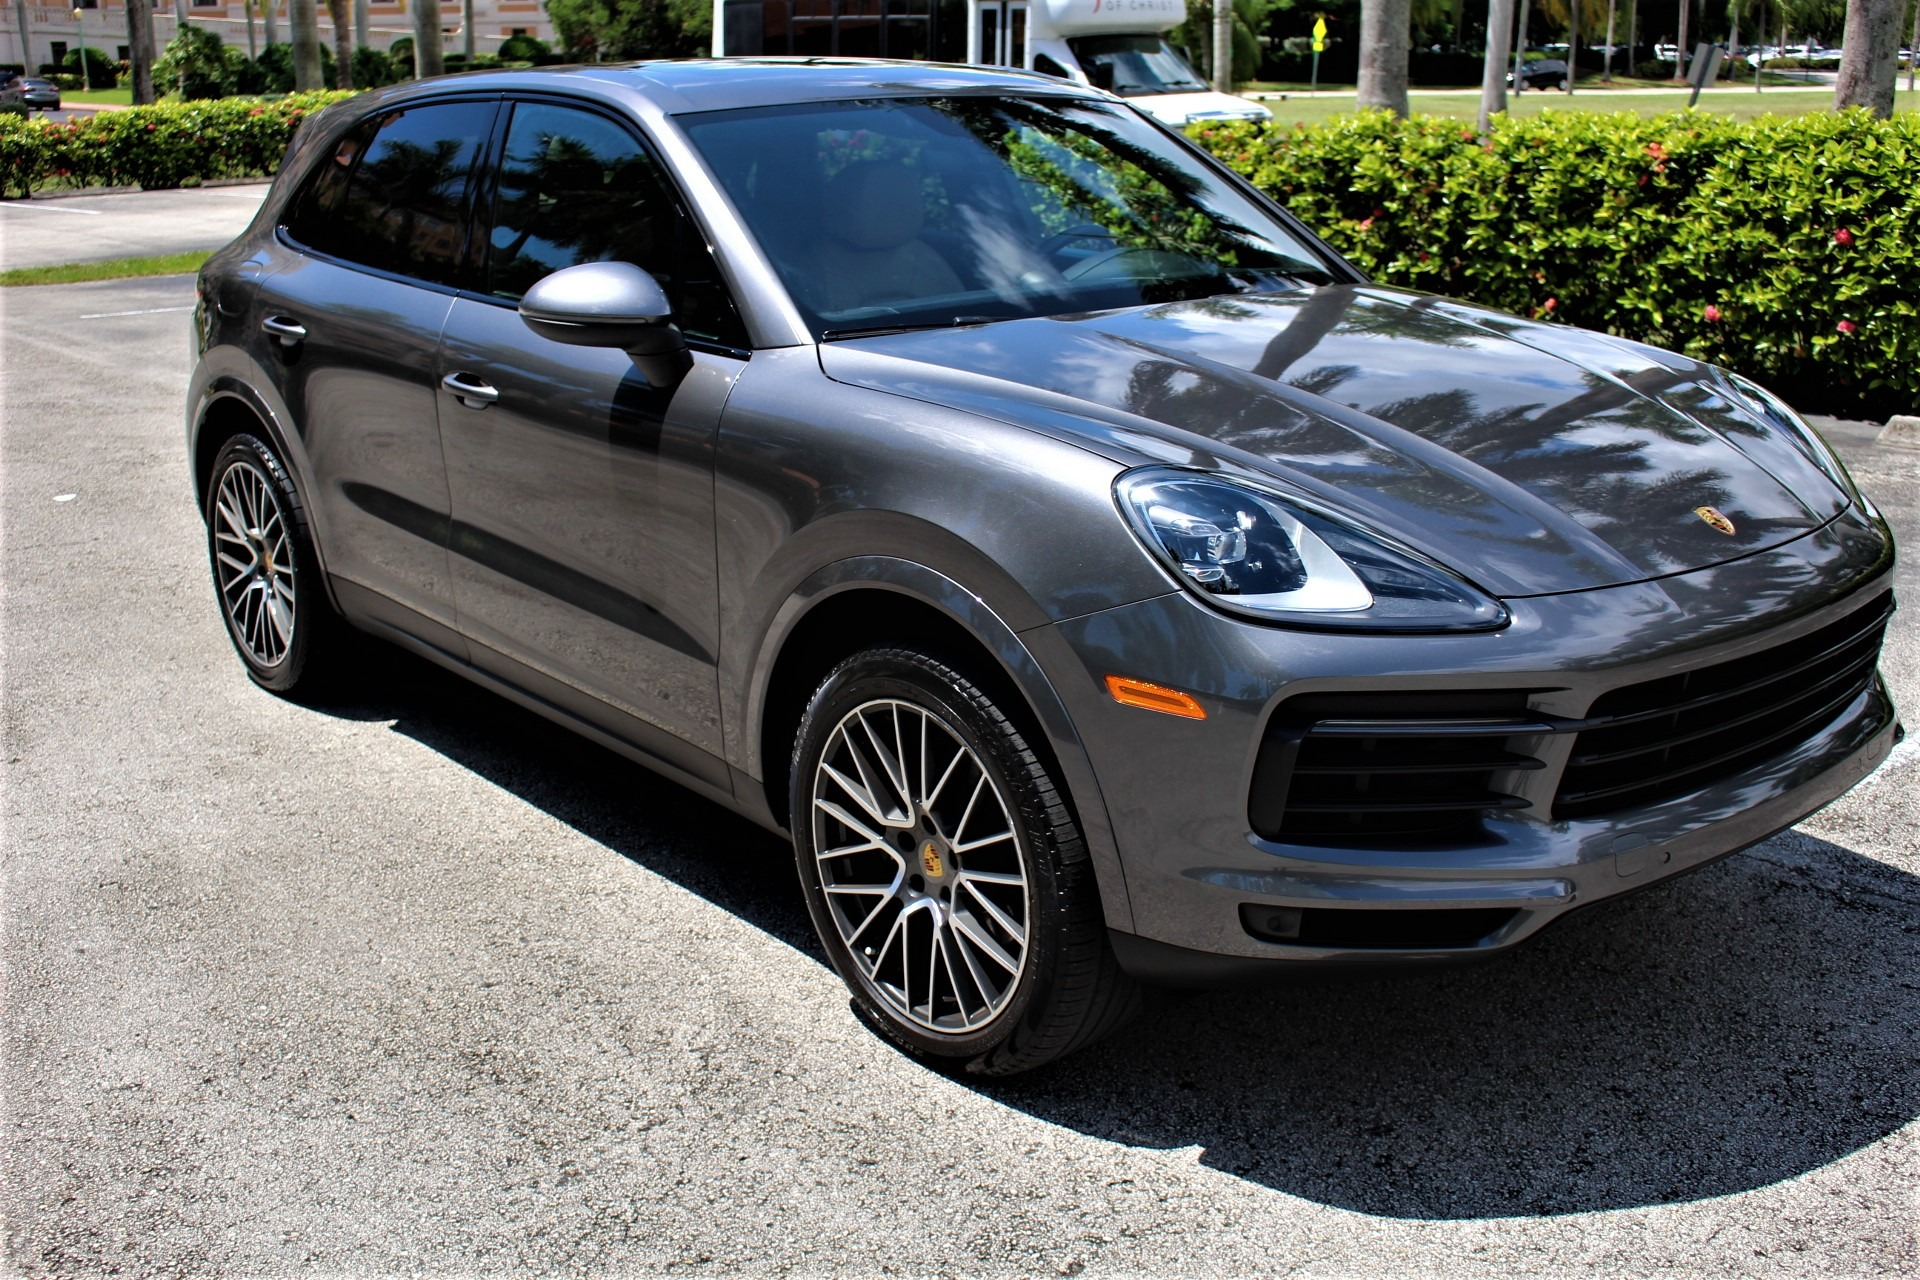 Used 2019 Porsche Cayenne for sale Sold at The Gables Sports Cars in Miami FL 33146 2